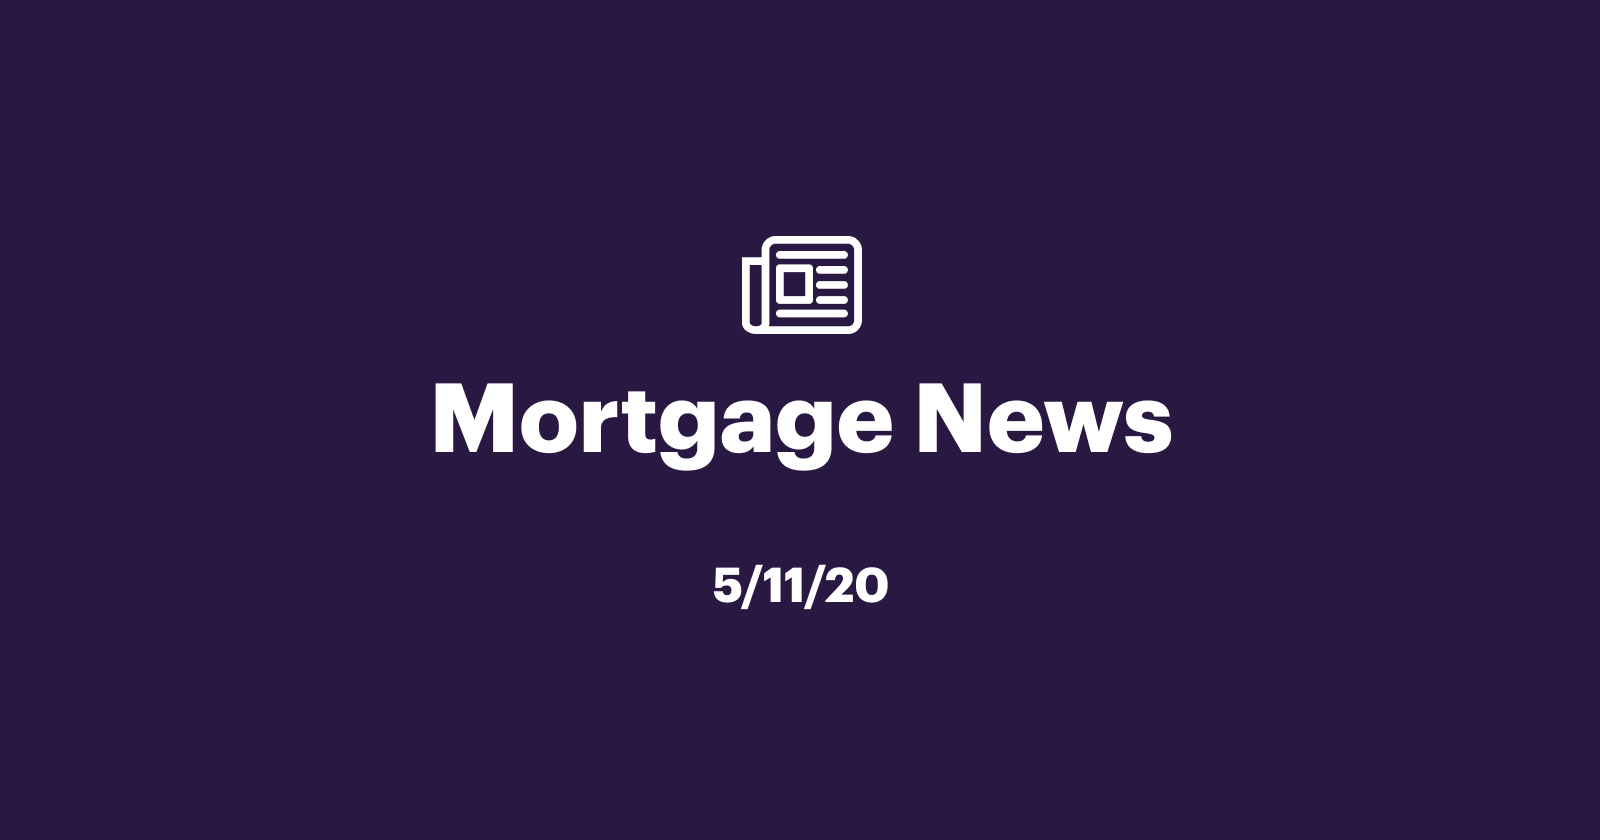 Mortgage News 5/11/20